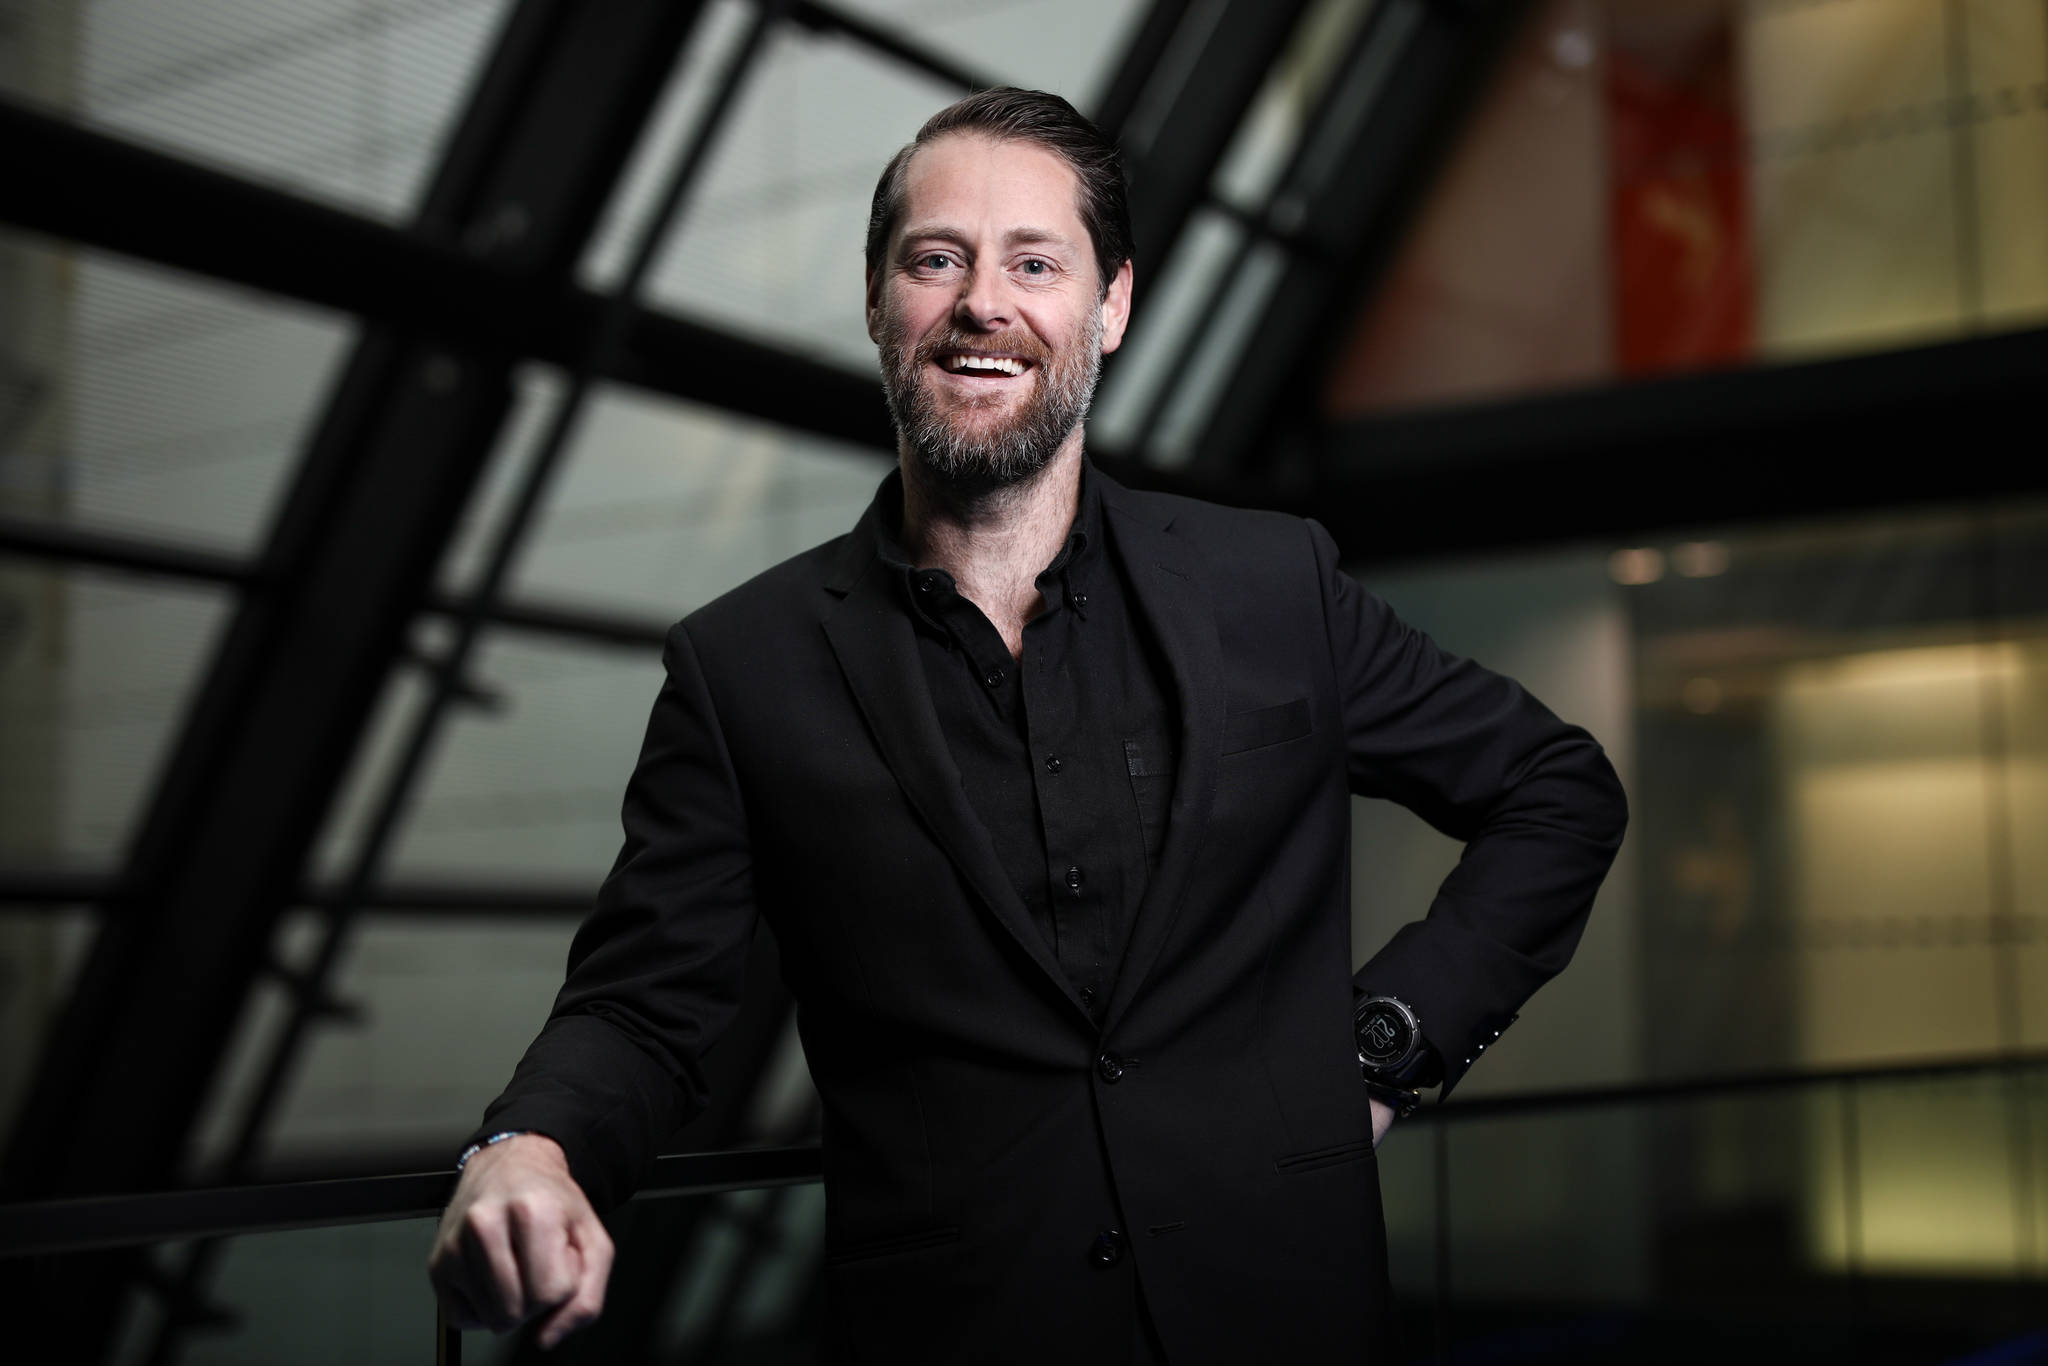 Ryan Holmes, chief executive officer of Hootsuite Media Inc., poses for a photograph following a Bloomberg Television interview in London, U.K., in 2017. U.S. President-elect Donald Trump is making social media very relevant, Holmes said during the interview. Photographer: Simon Dawson/Bloomberg